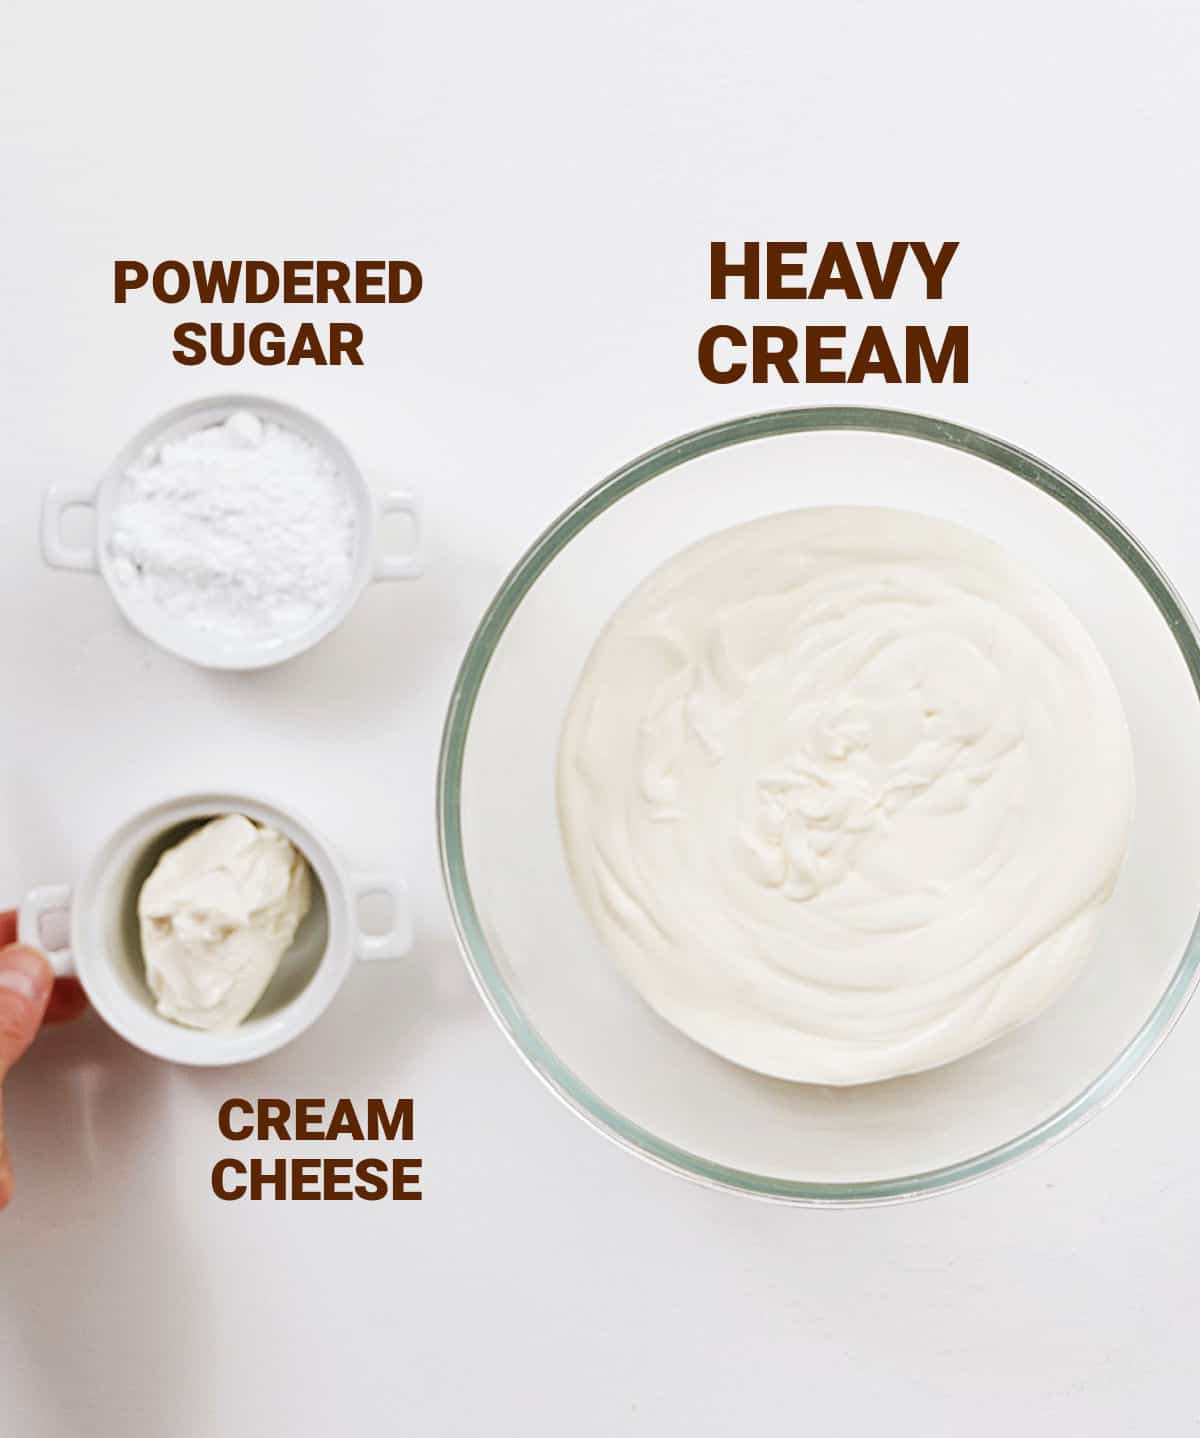 Three bowls with cream, powdered sugar and cream cheese on white surface